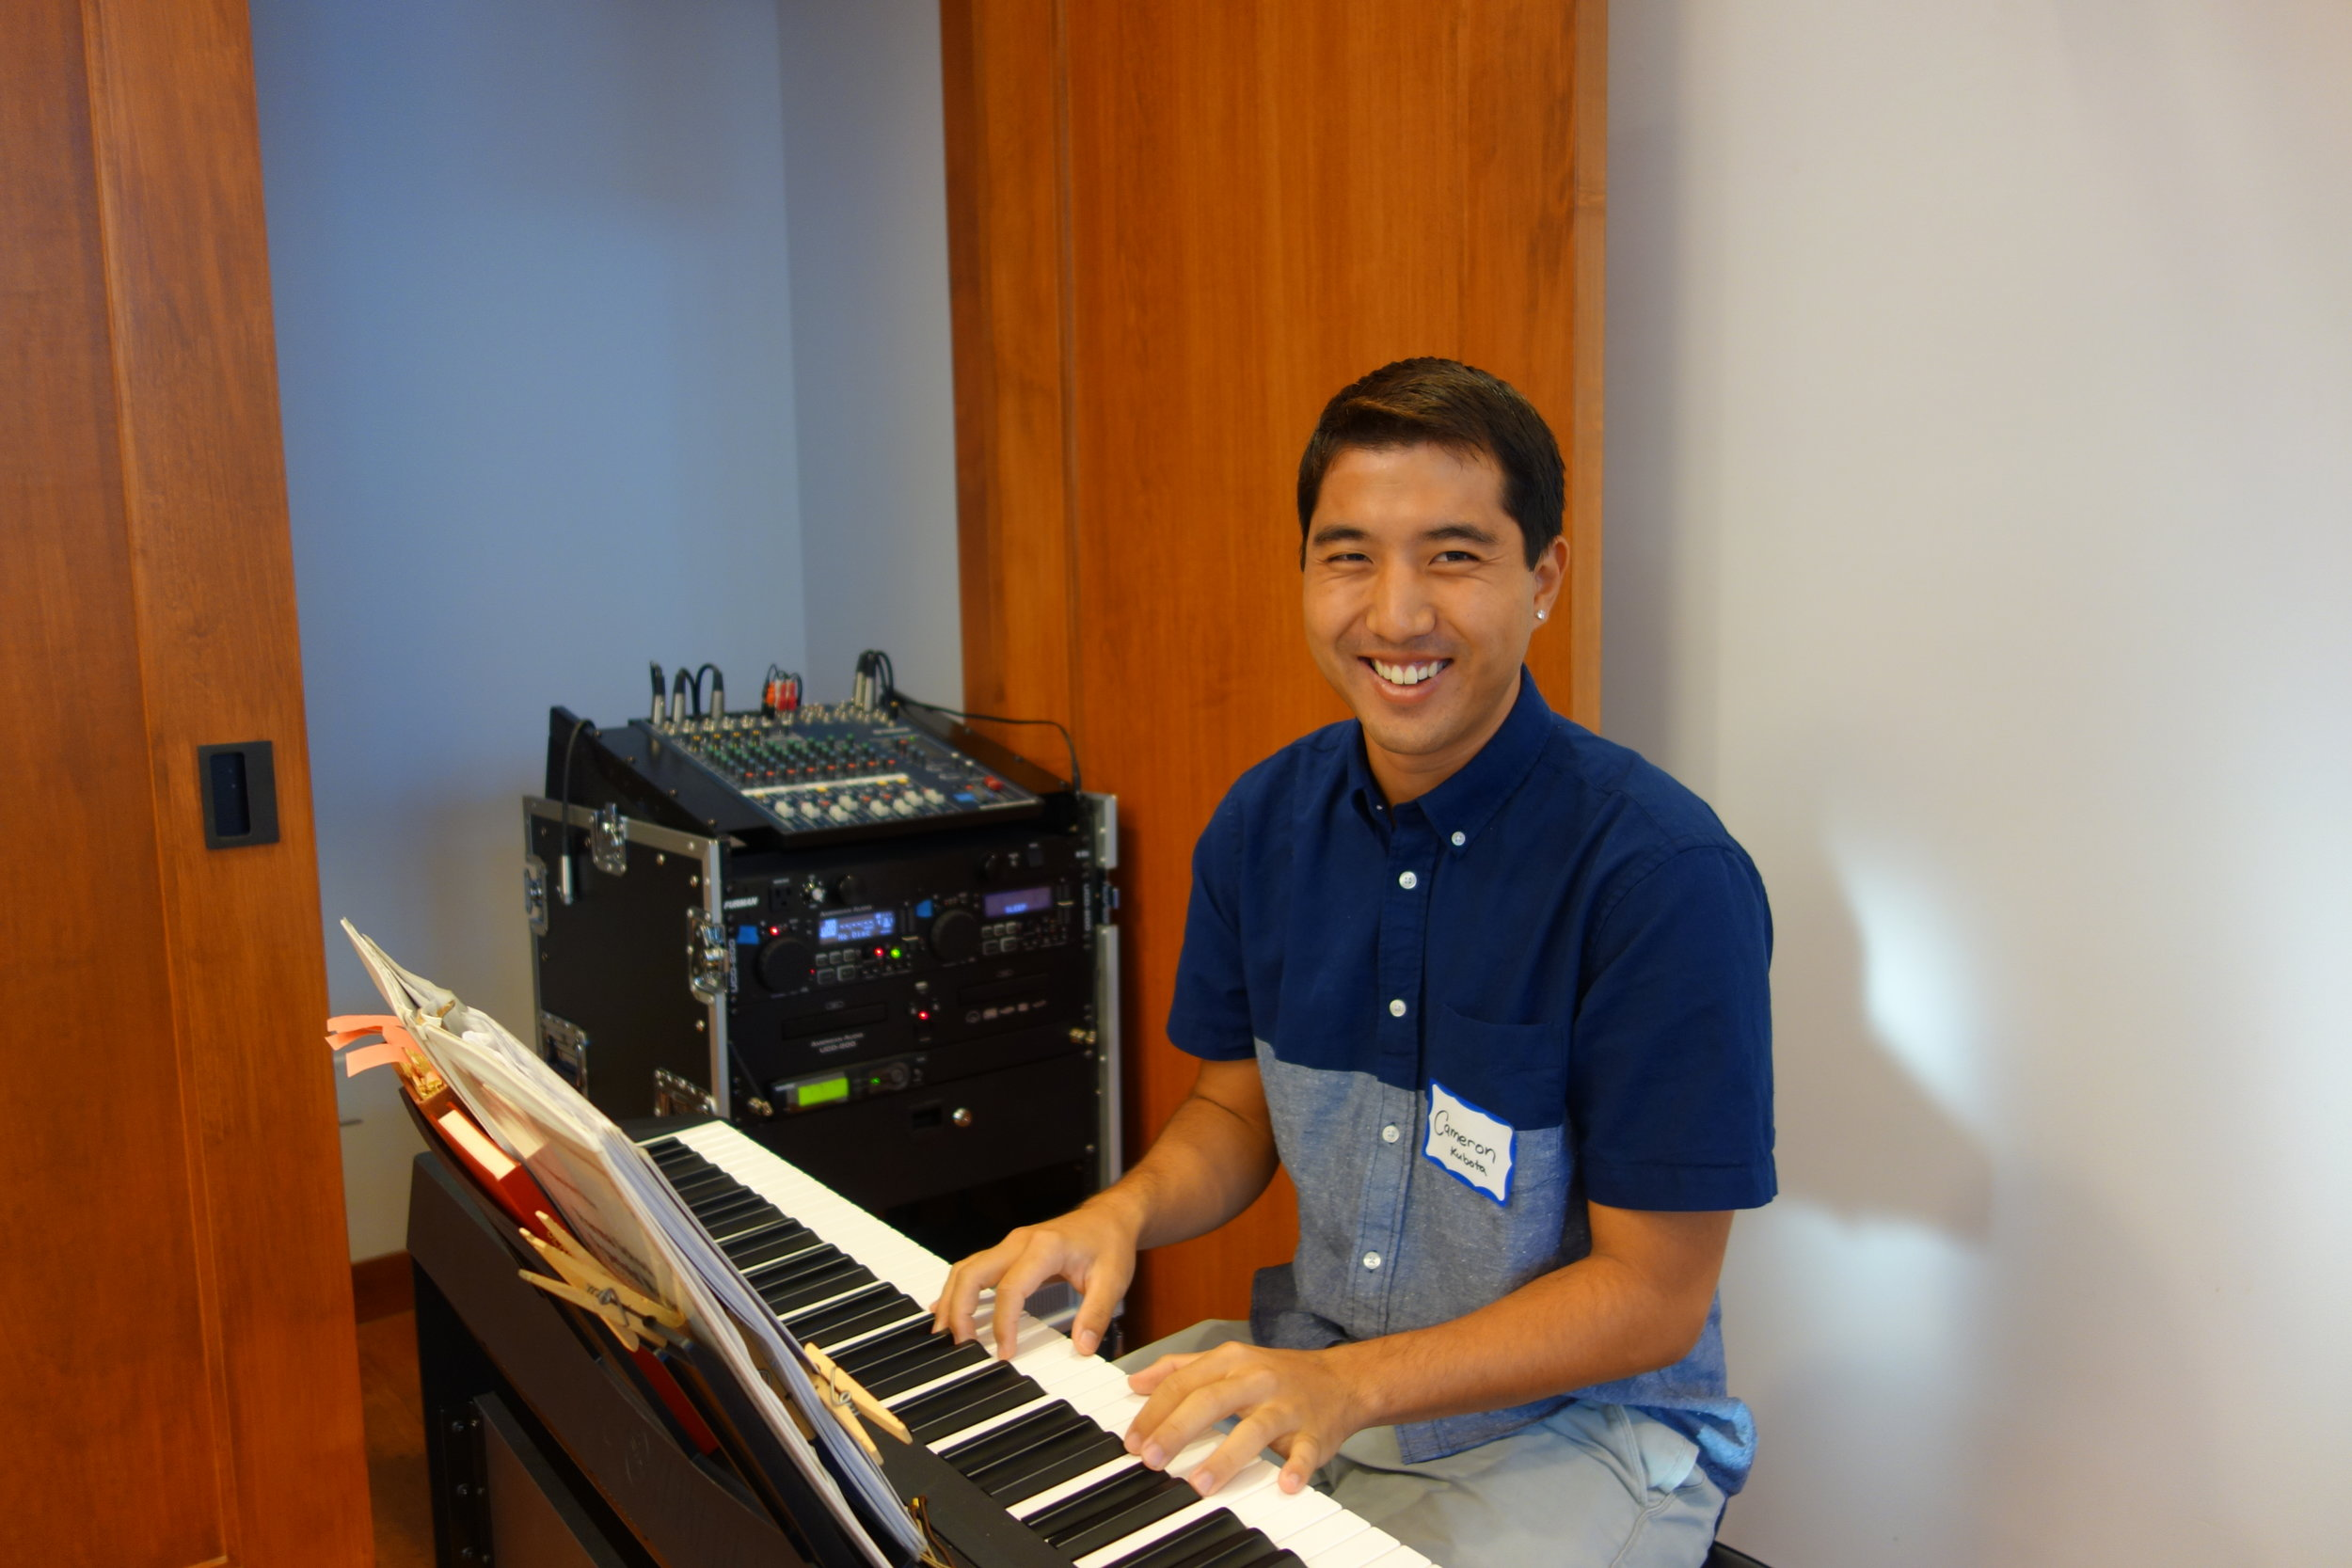 Mahalo to Cameron Kubota, our guest pianist